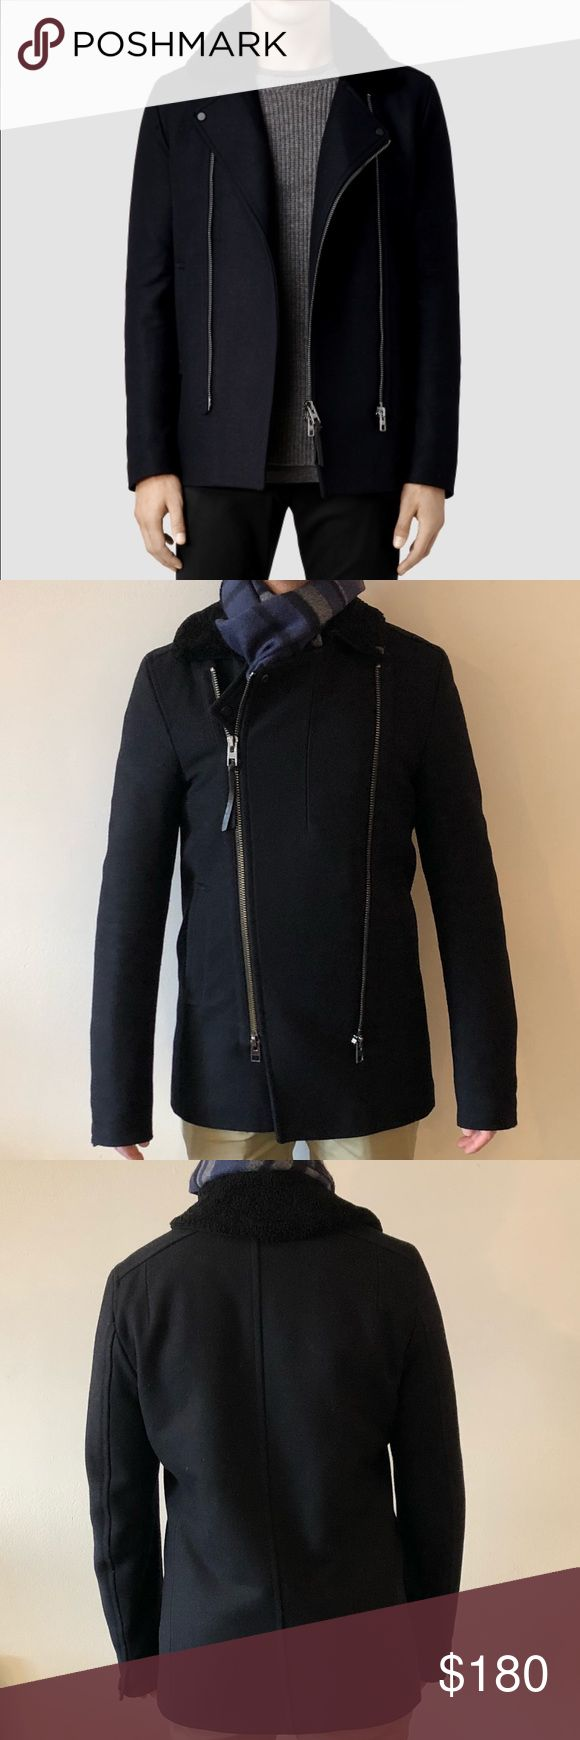 All Saints black pea coat with Sherpa collar All Saints wool black pea coat with double front zipper detail, Sherpa collar, and slash front pockets. Minor pilling and small piece of sherpa missing from corner of collar (shown in picture). Overall great condition. Size XS. All Saints Jackets & Coats Pea Coats